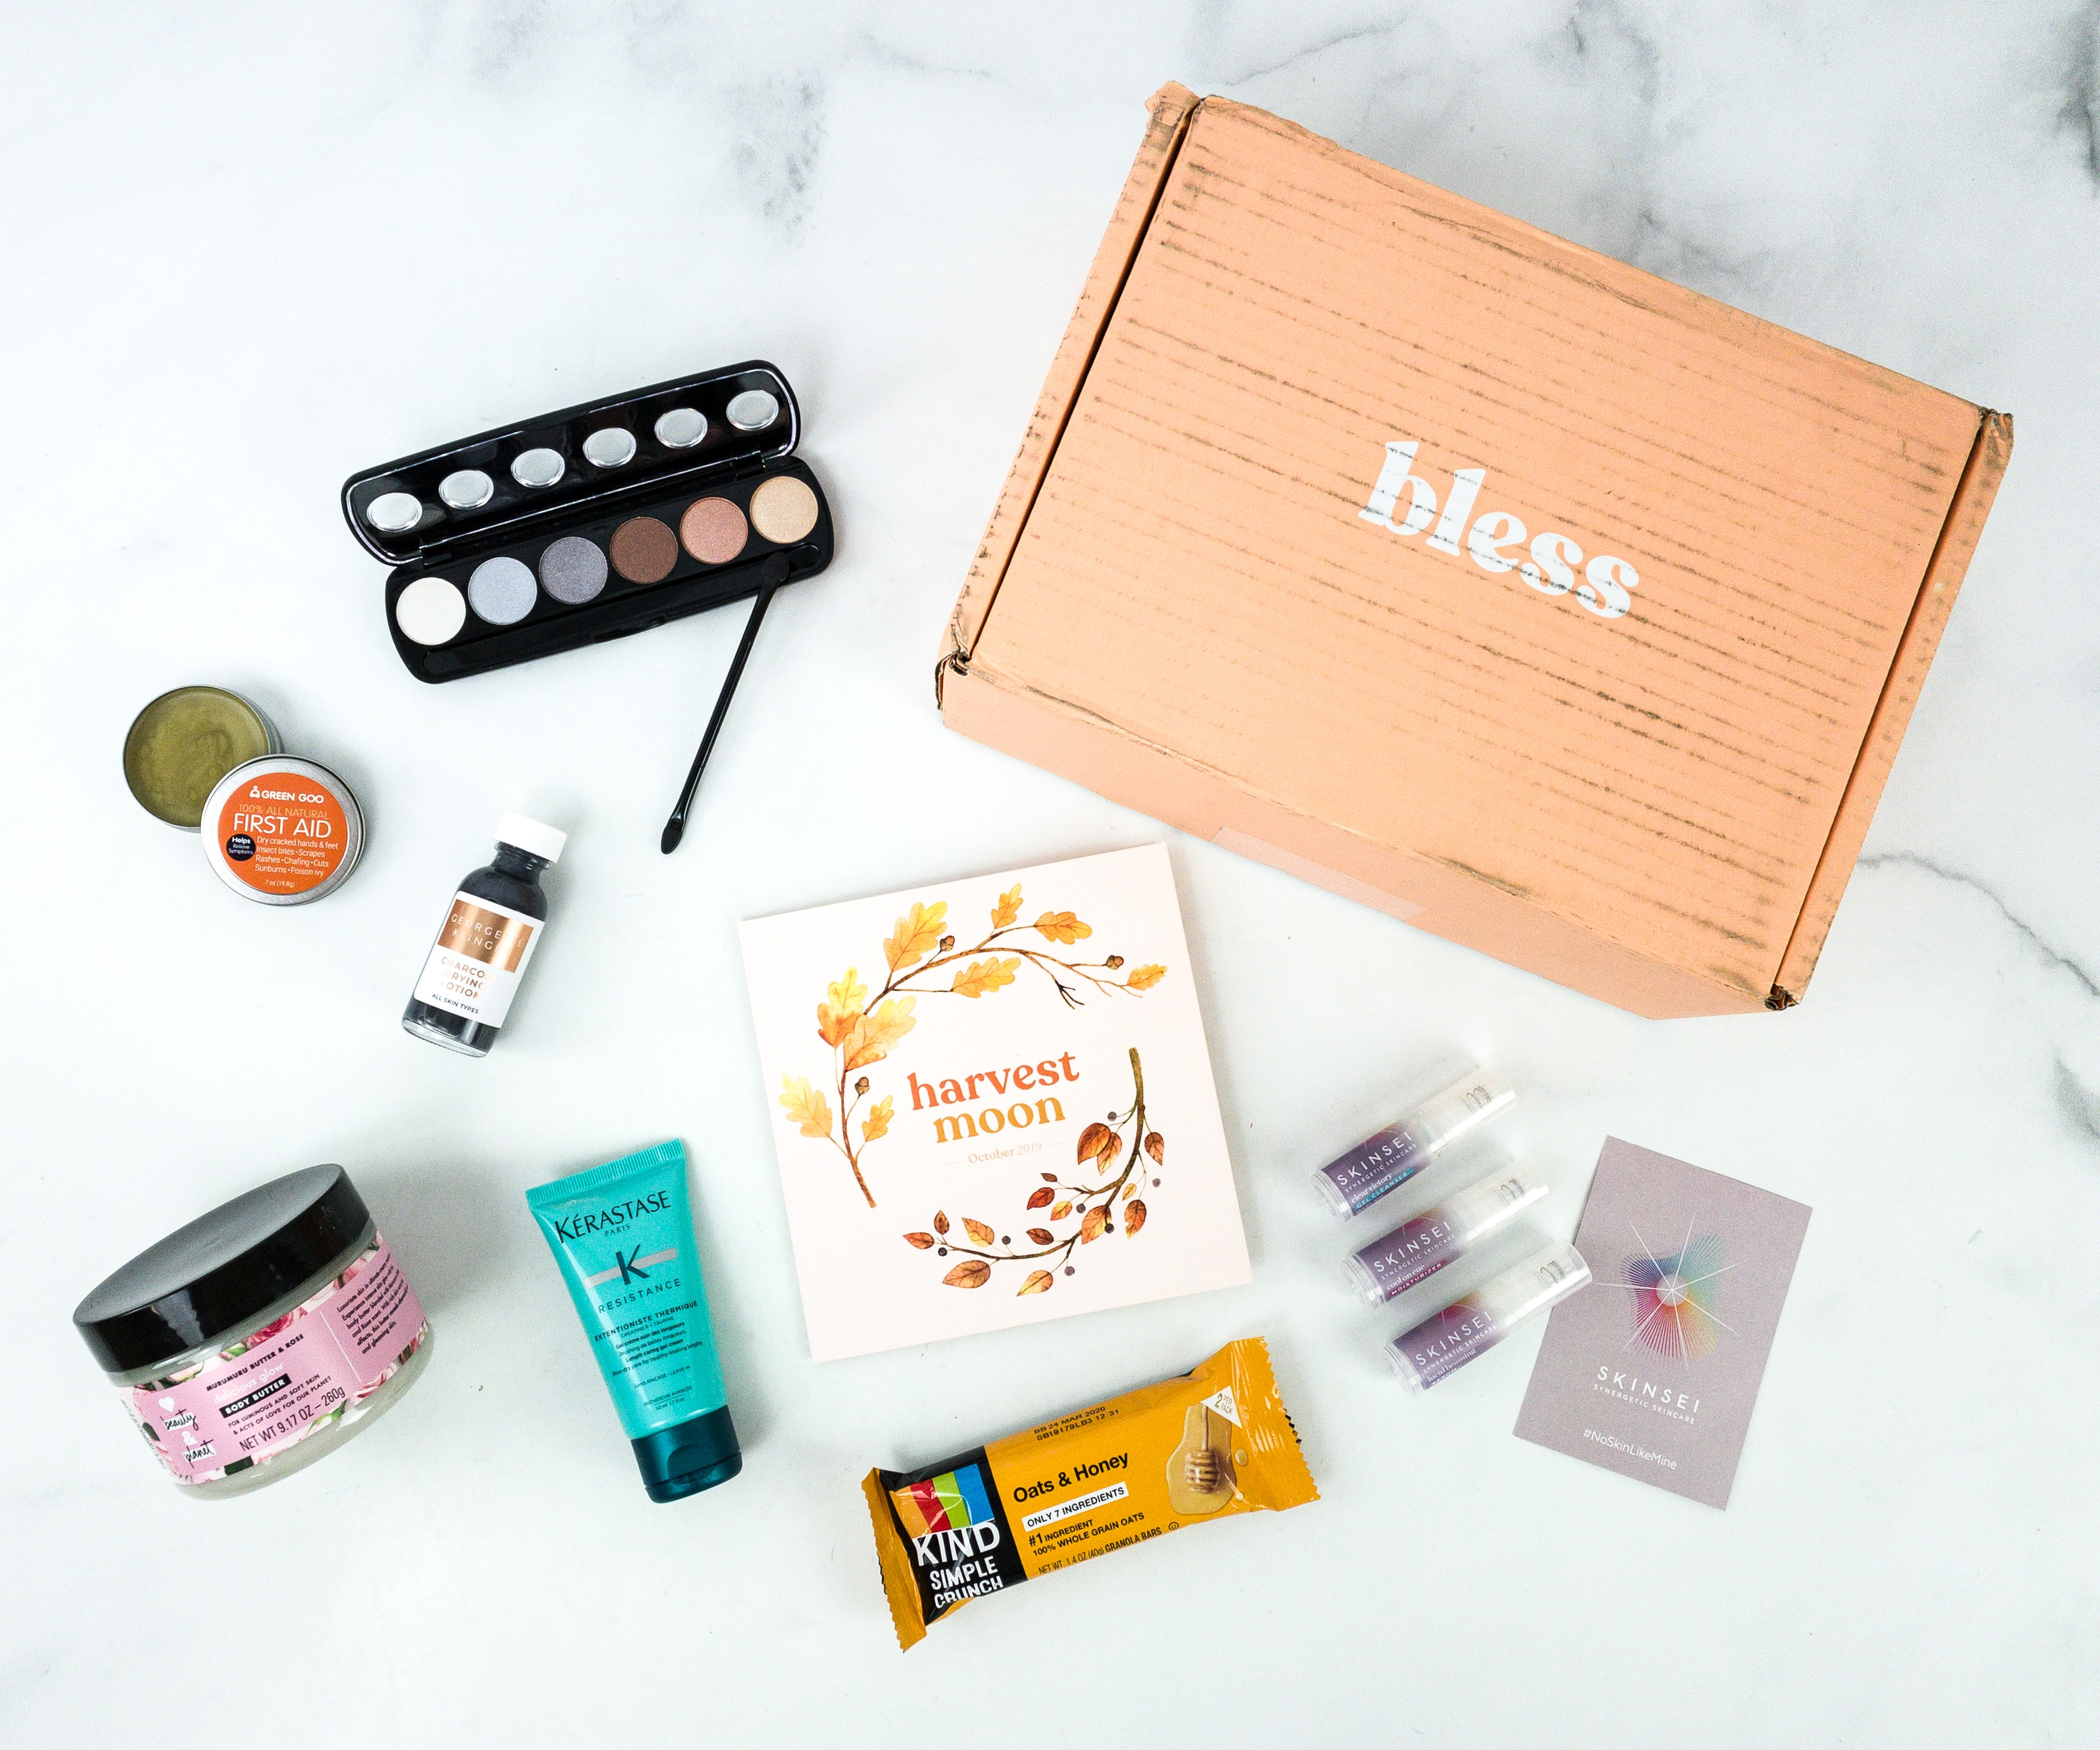 Bless Box October 2019 Subscription Box Review & Coupon